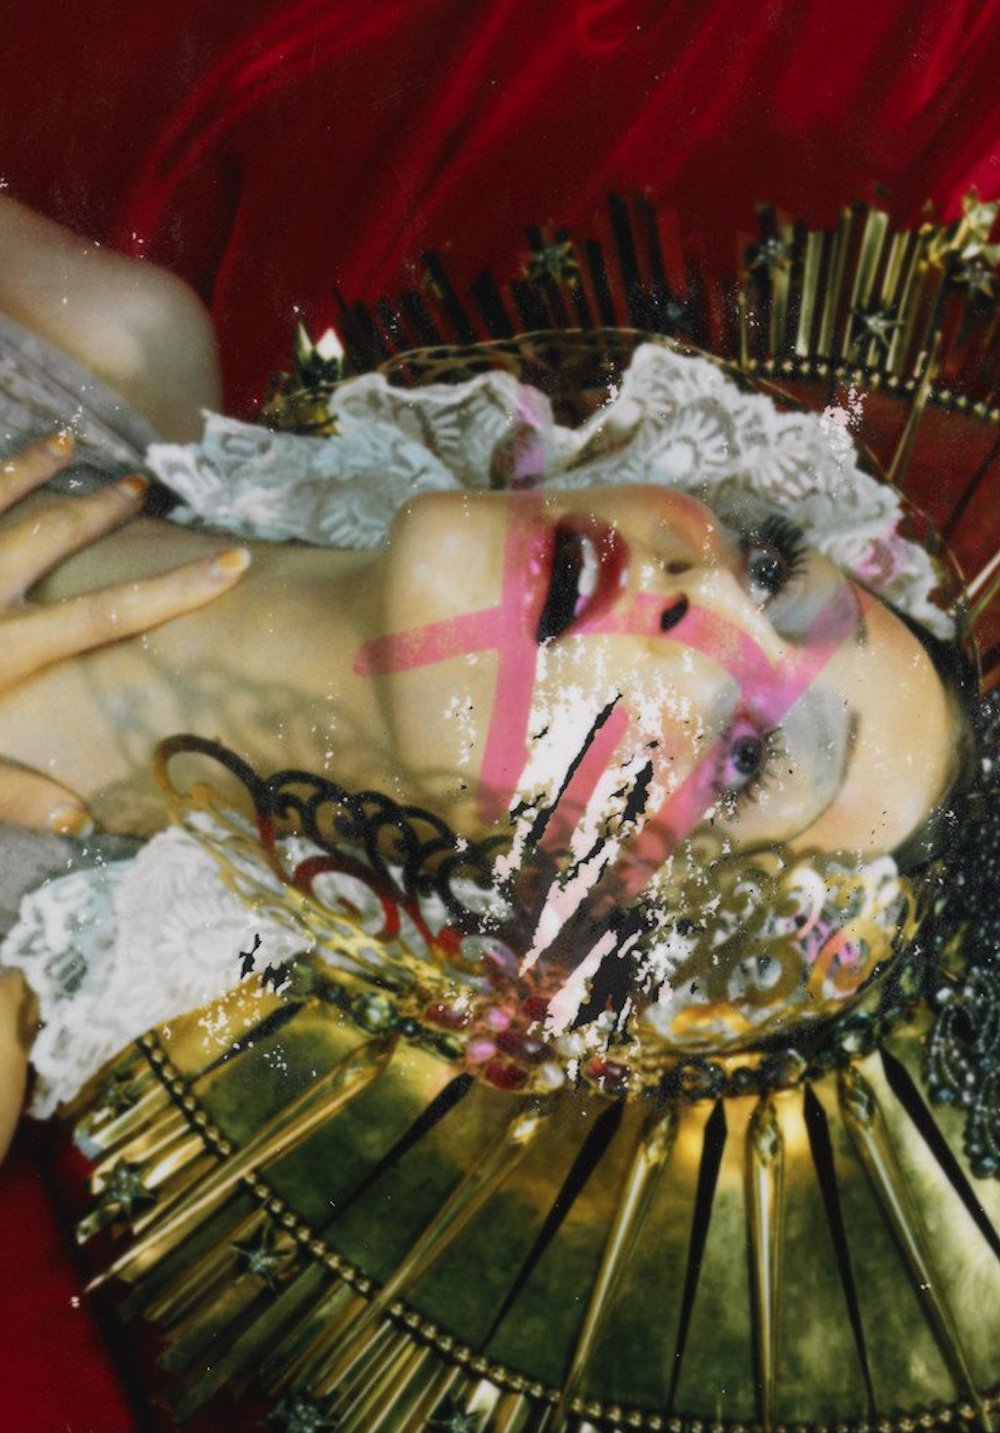 Miles Aldridge Please return Polaroid